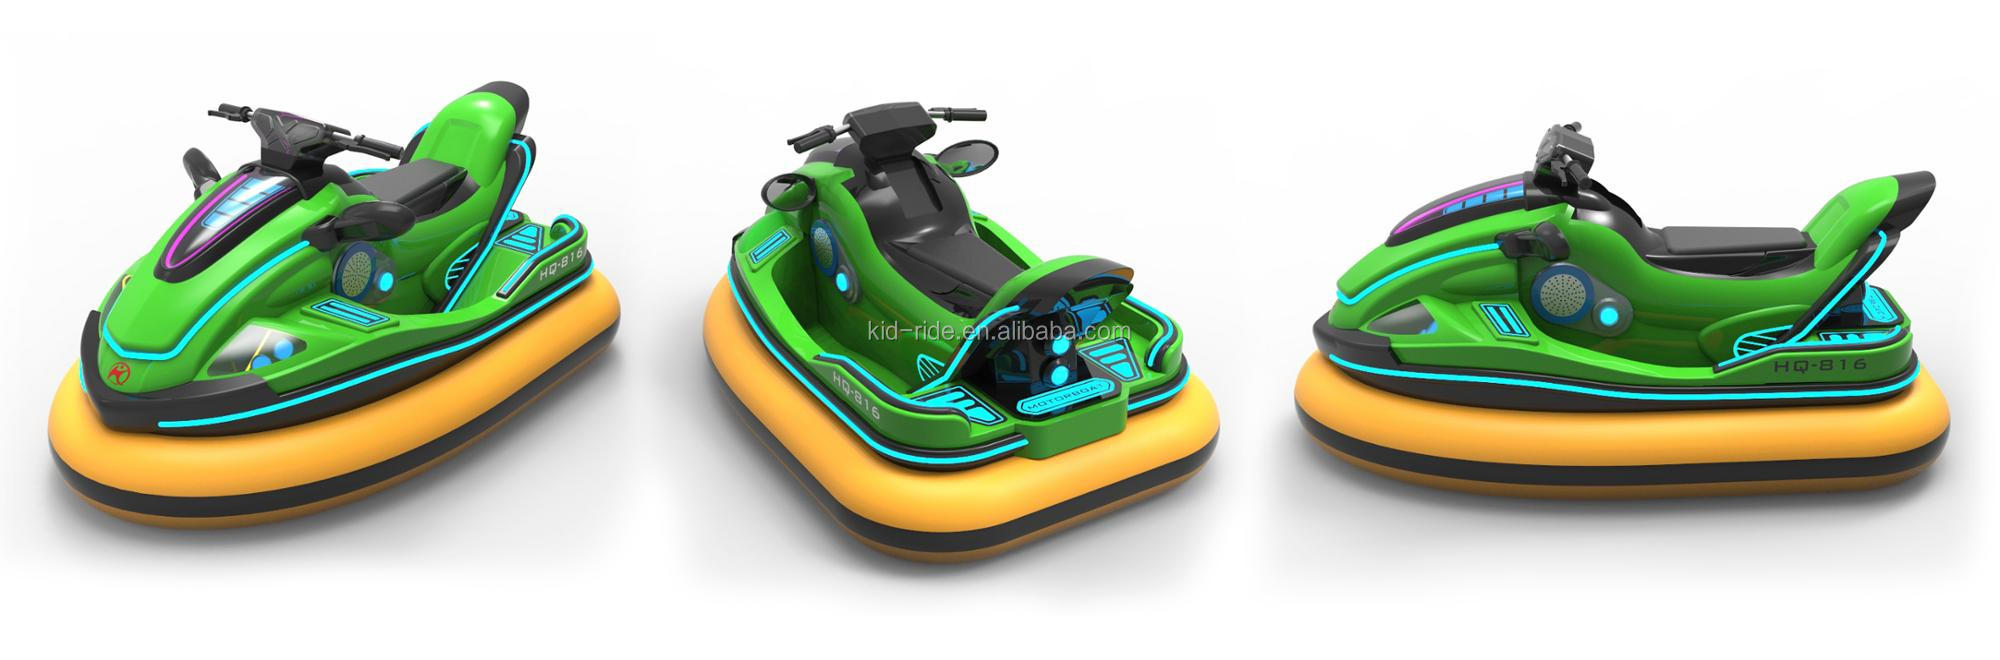 Amusement Park Outdoor Fiberglass Electric Battery Bumper Car for Kids Rides